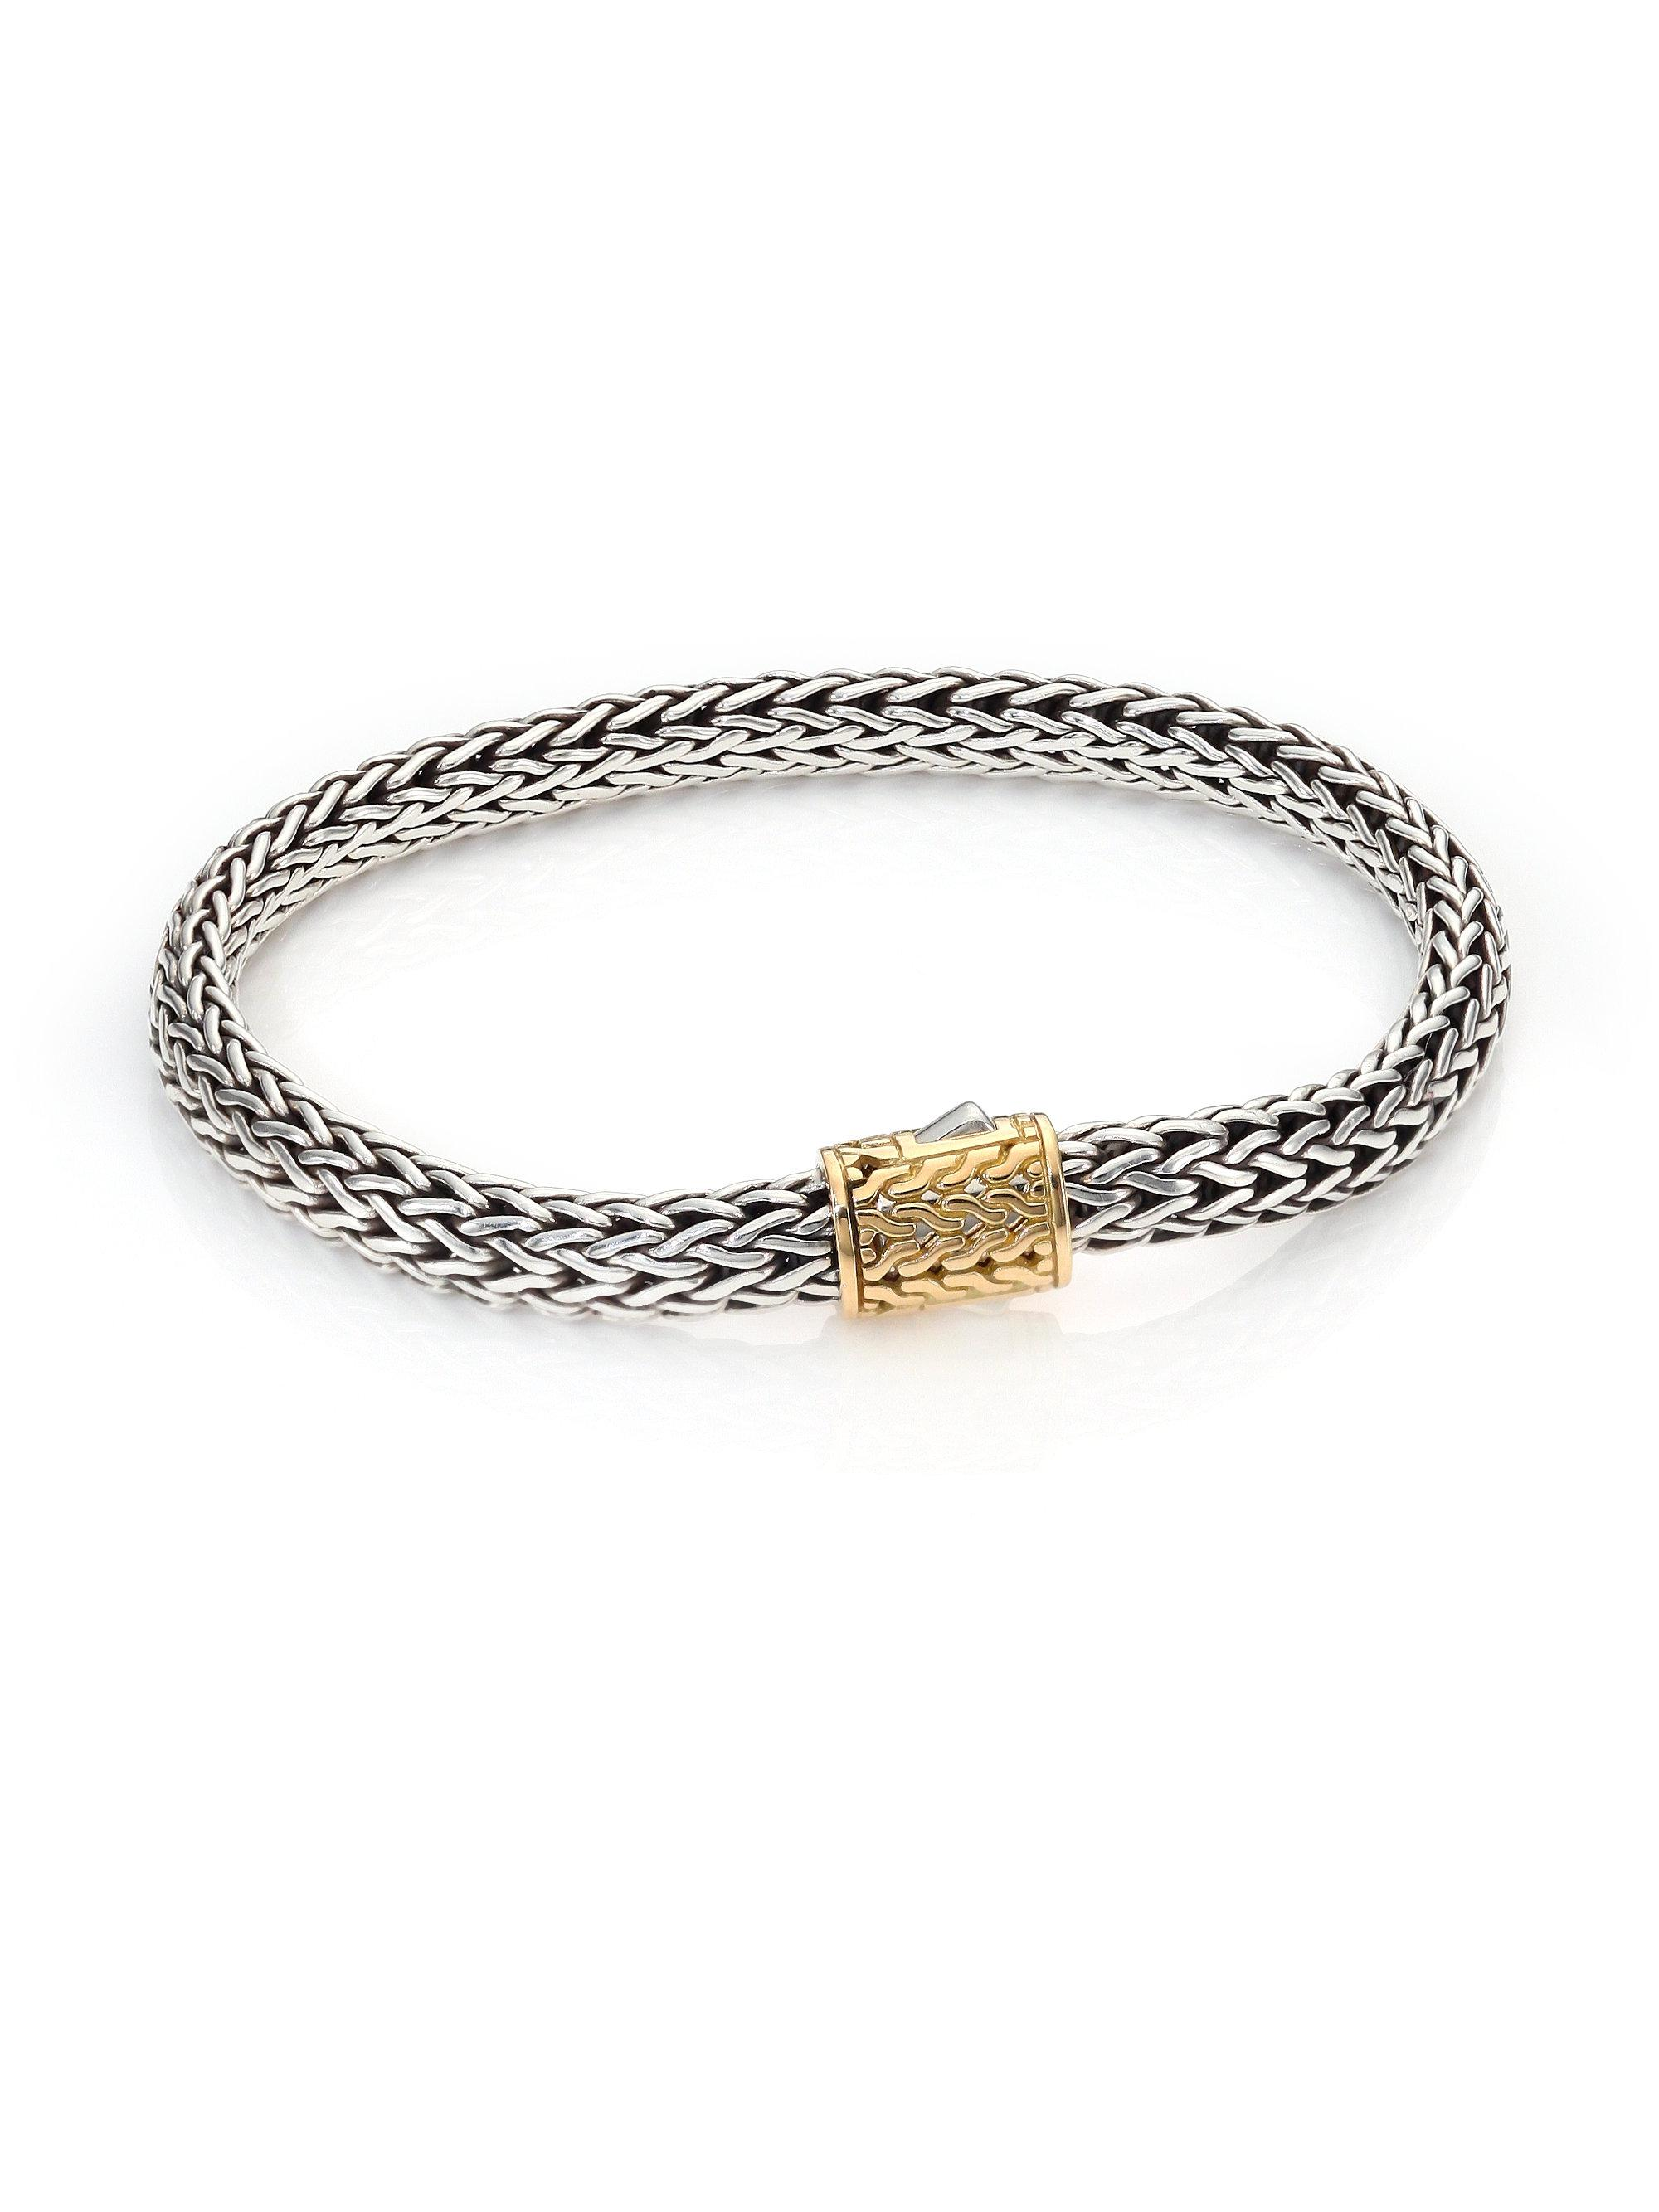 John Hardy Gold-Accent Small Cable-Chain Bracelet u17VHnHW64